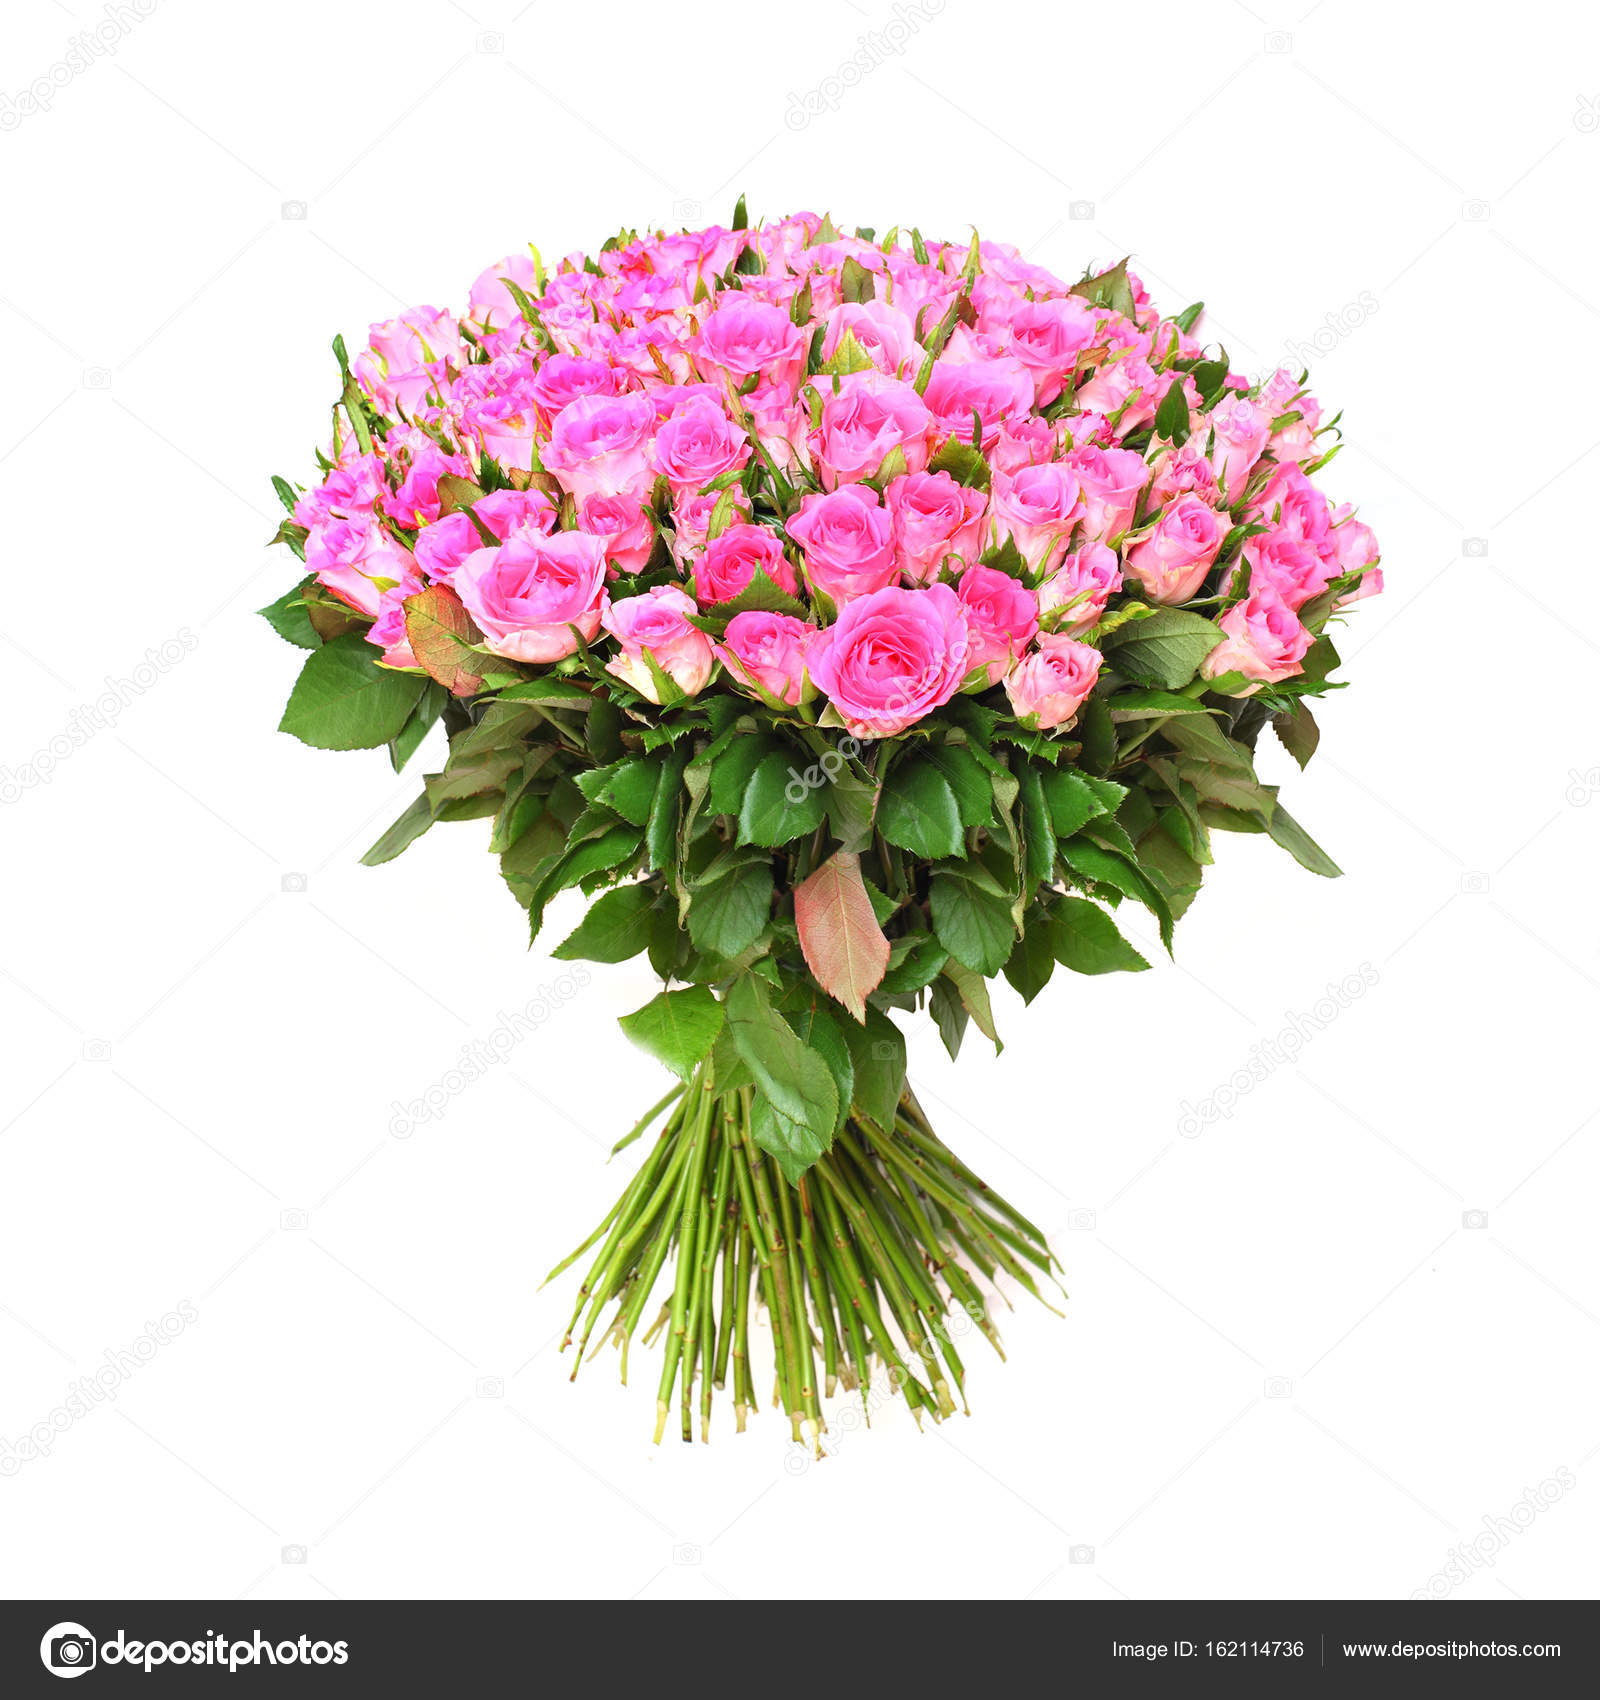 Hundred Pink Roses Bunch Flowers White Background Great Gift Stock